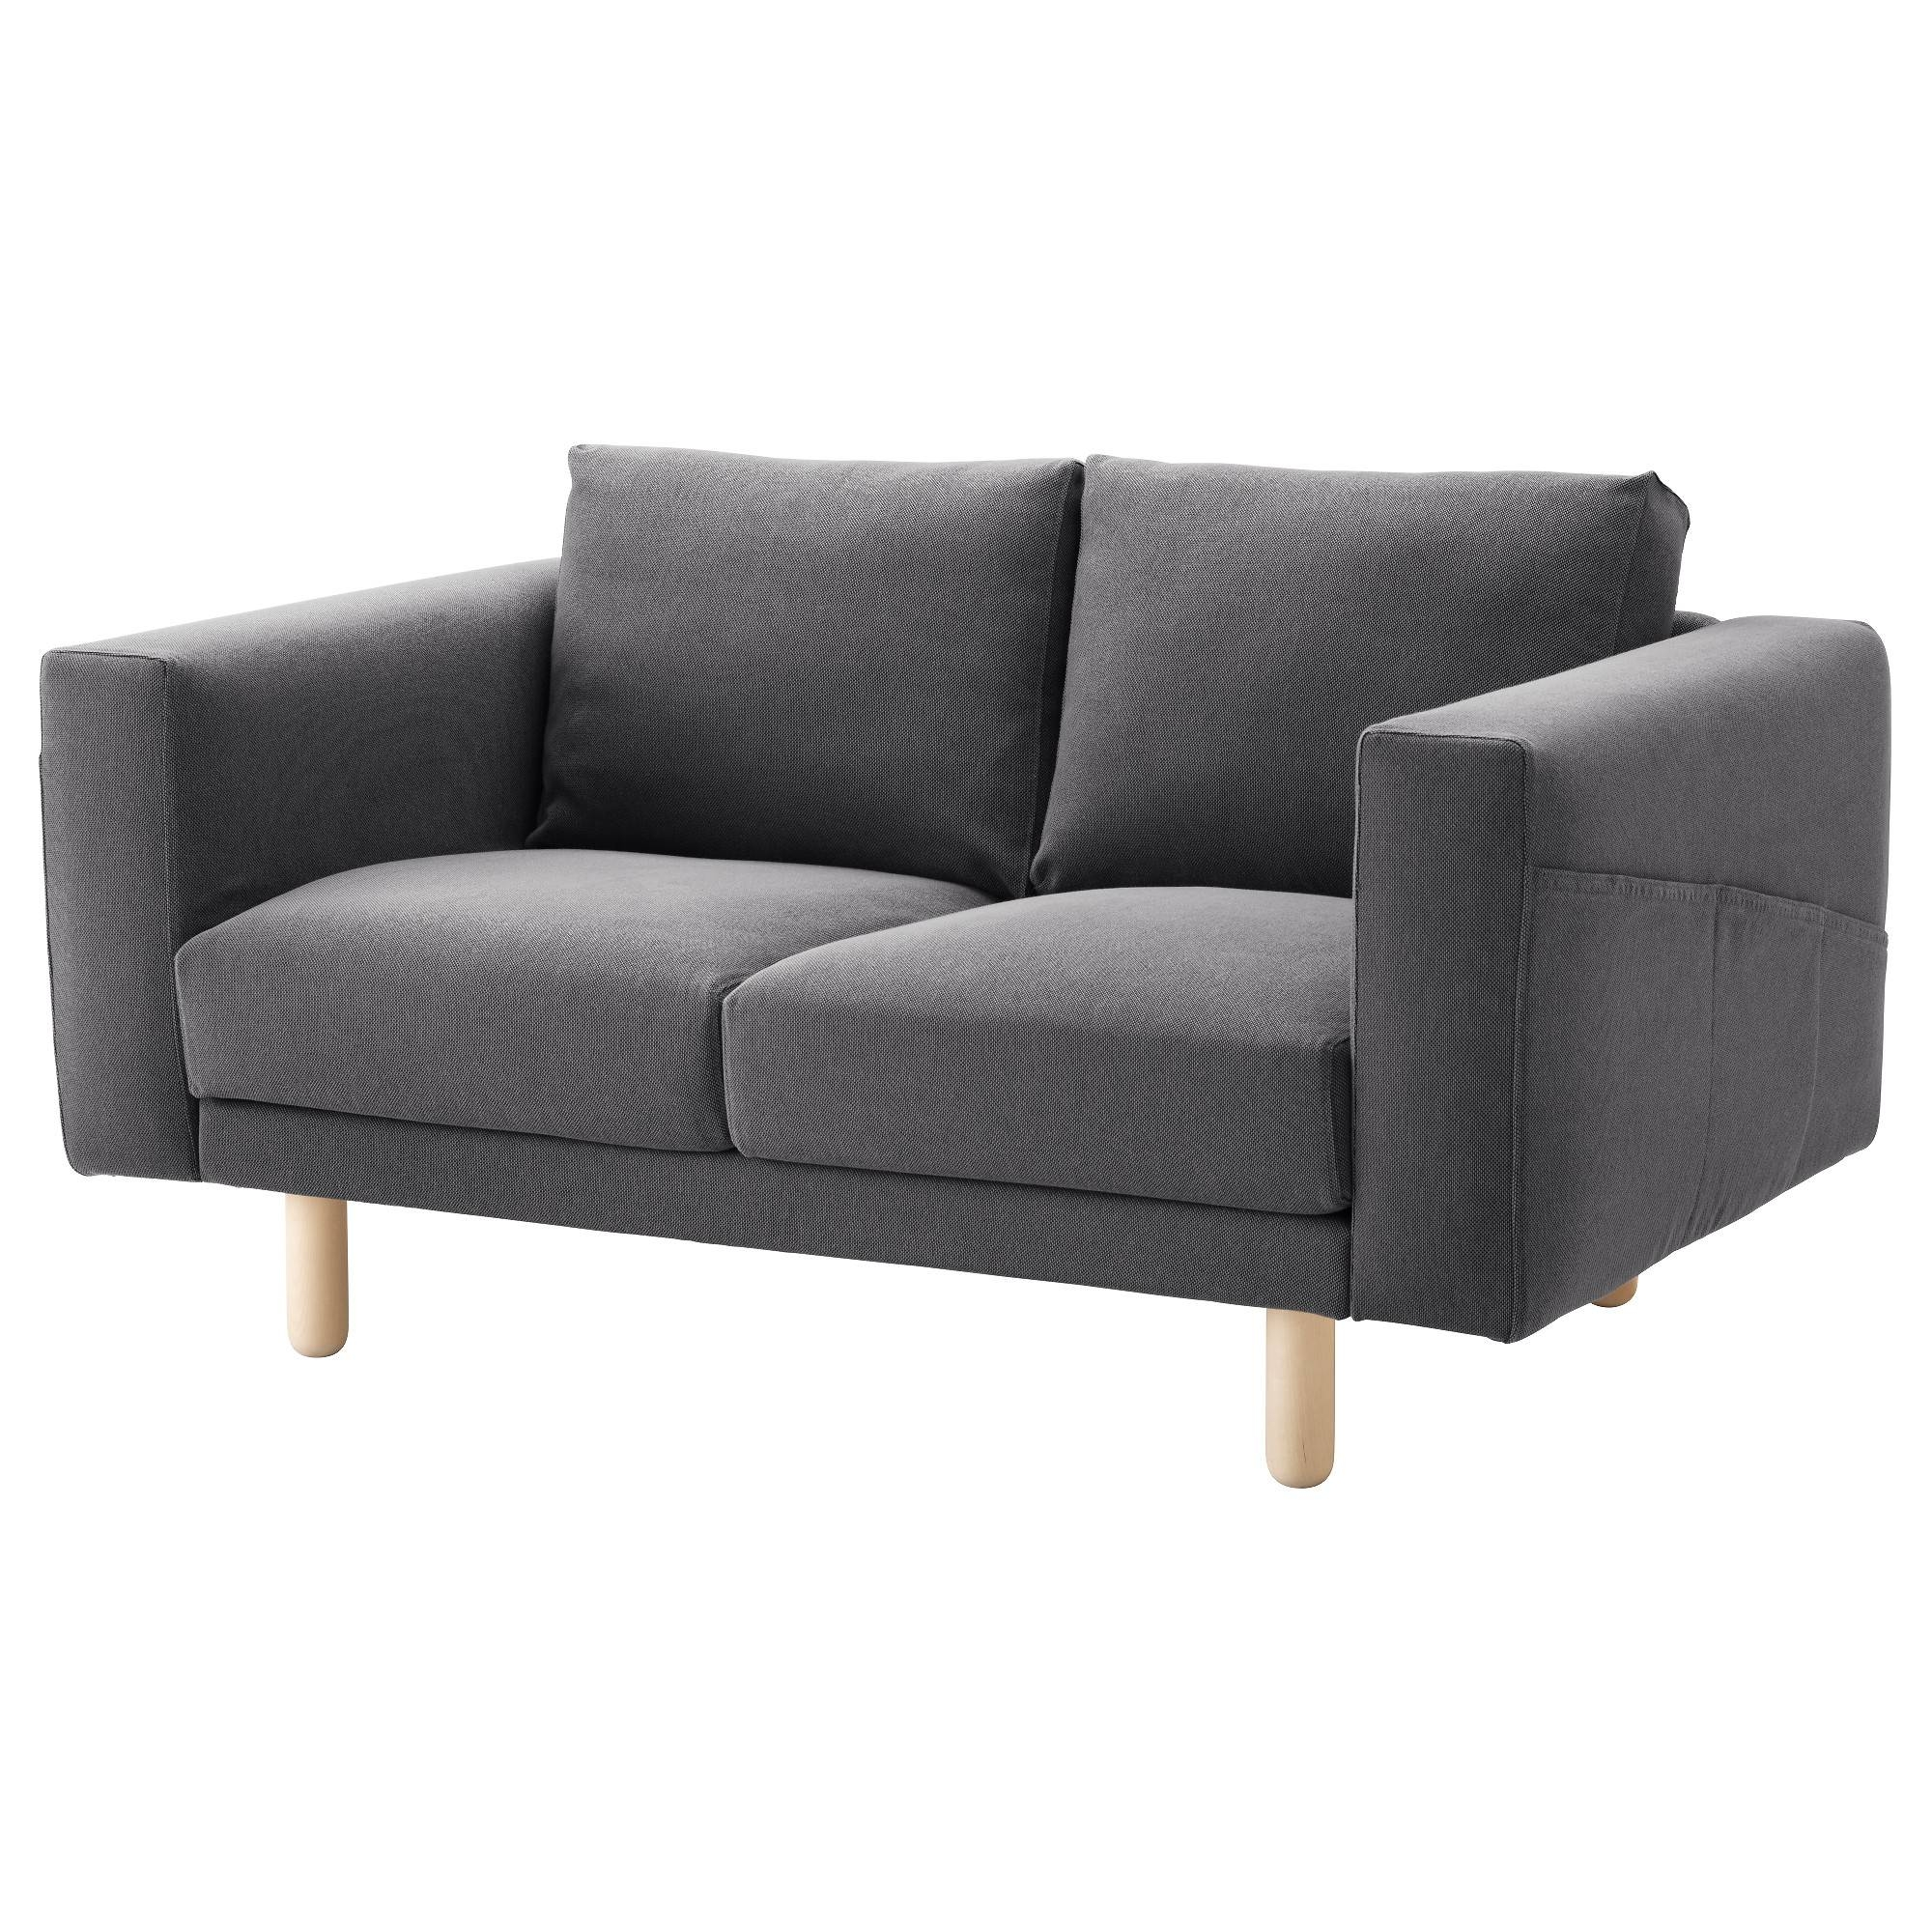 Small Sofa 2 Seater Ikea Pertaining To Sofas Image